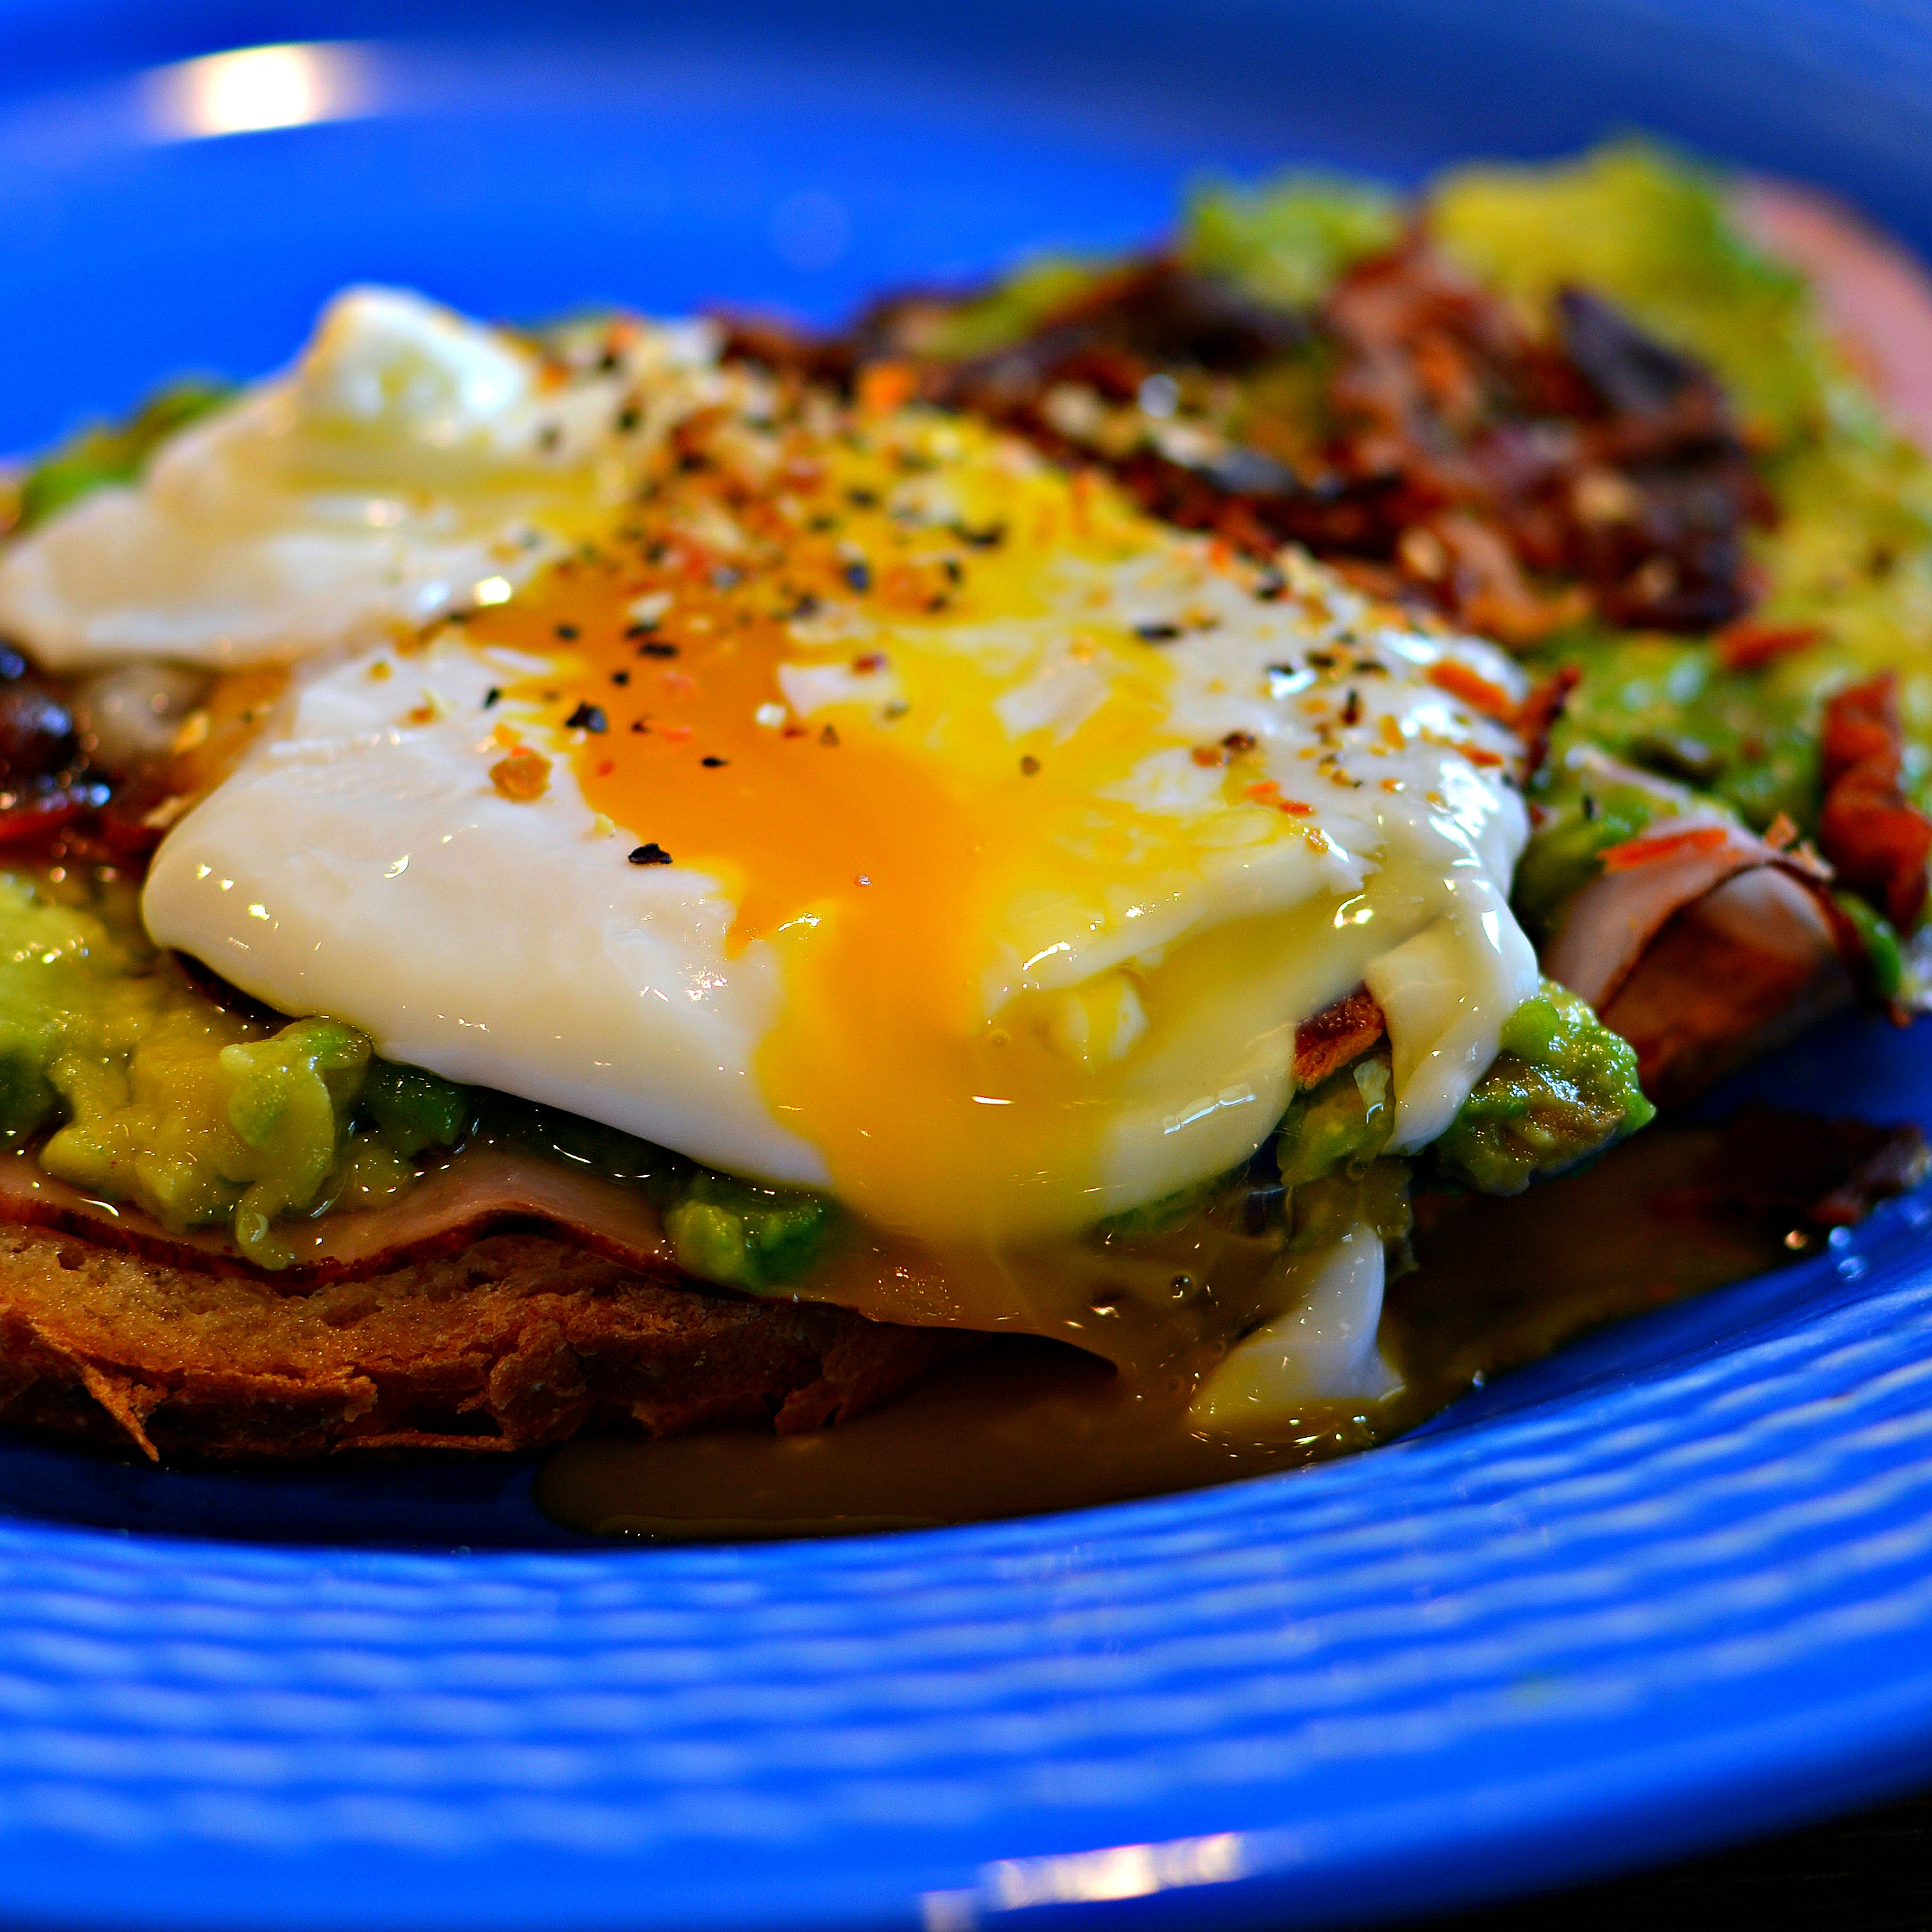 Avocado Toast with Crumbled Crispy Pancetta